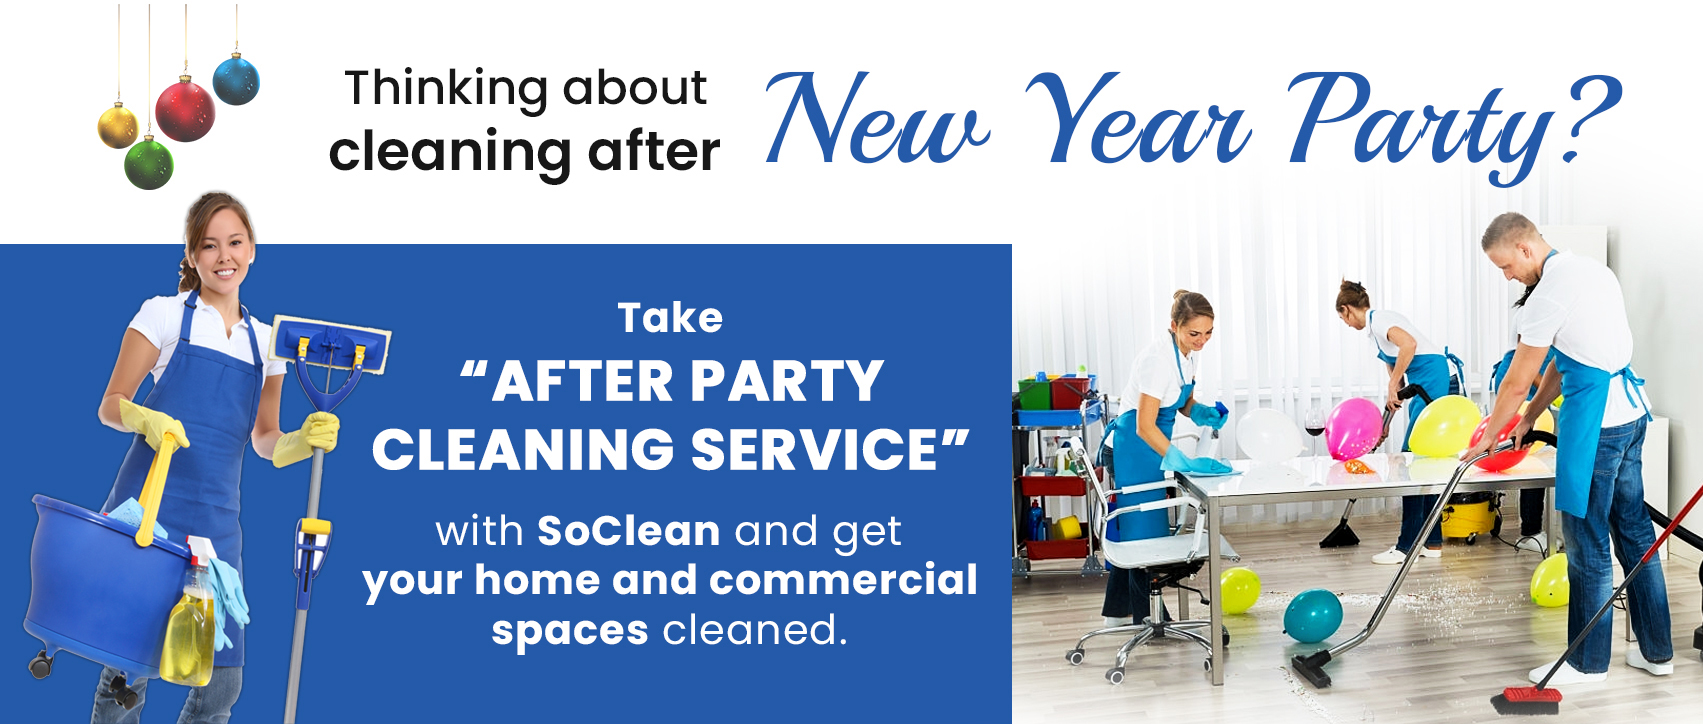 After Party Cleaning Service Dubai?